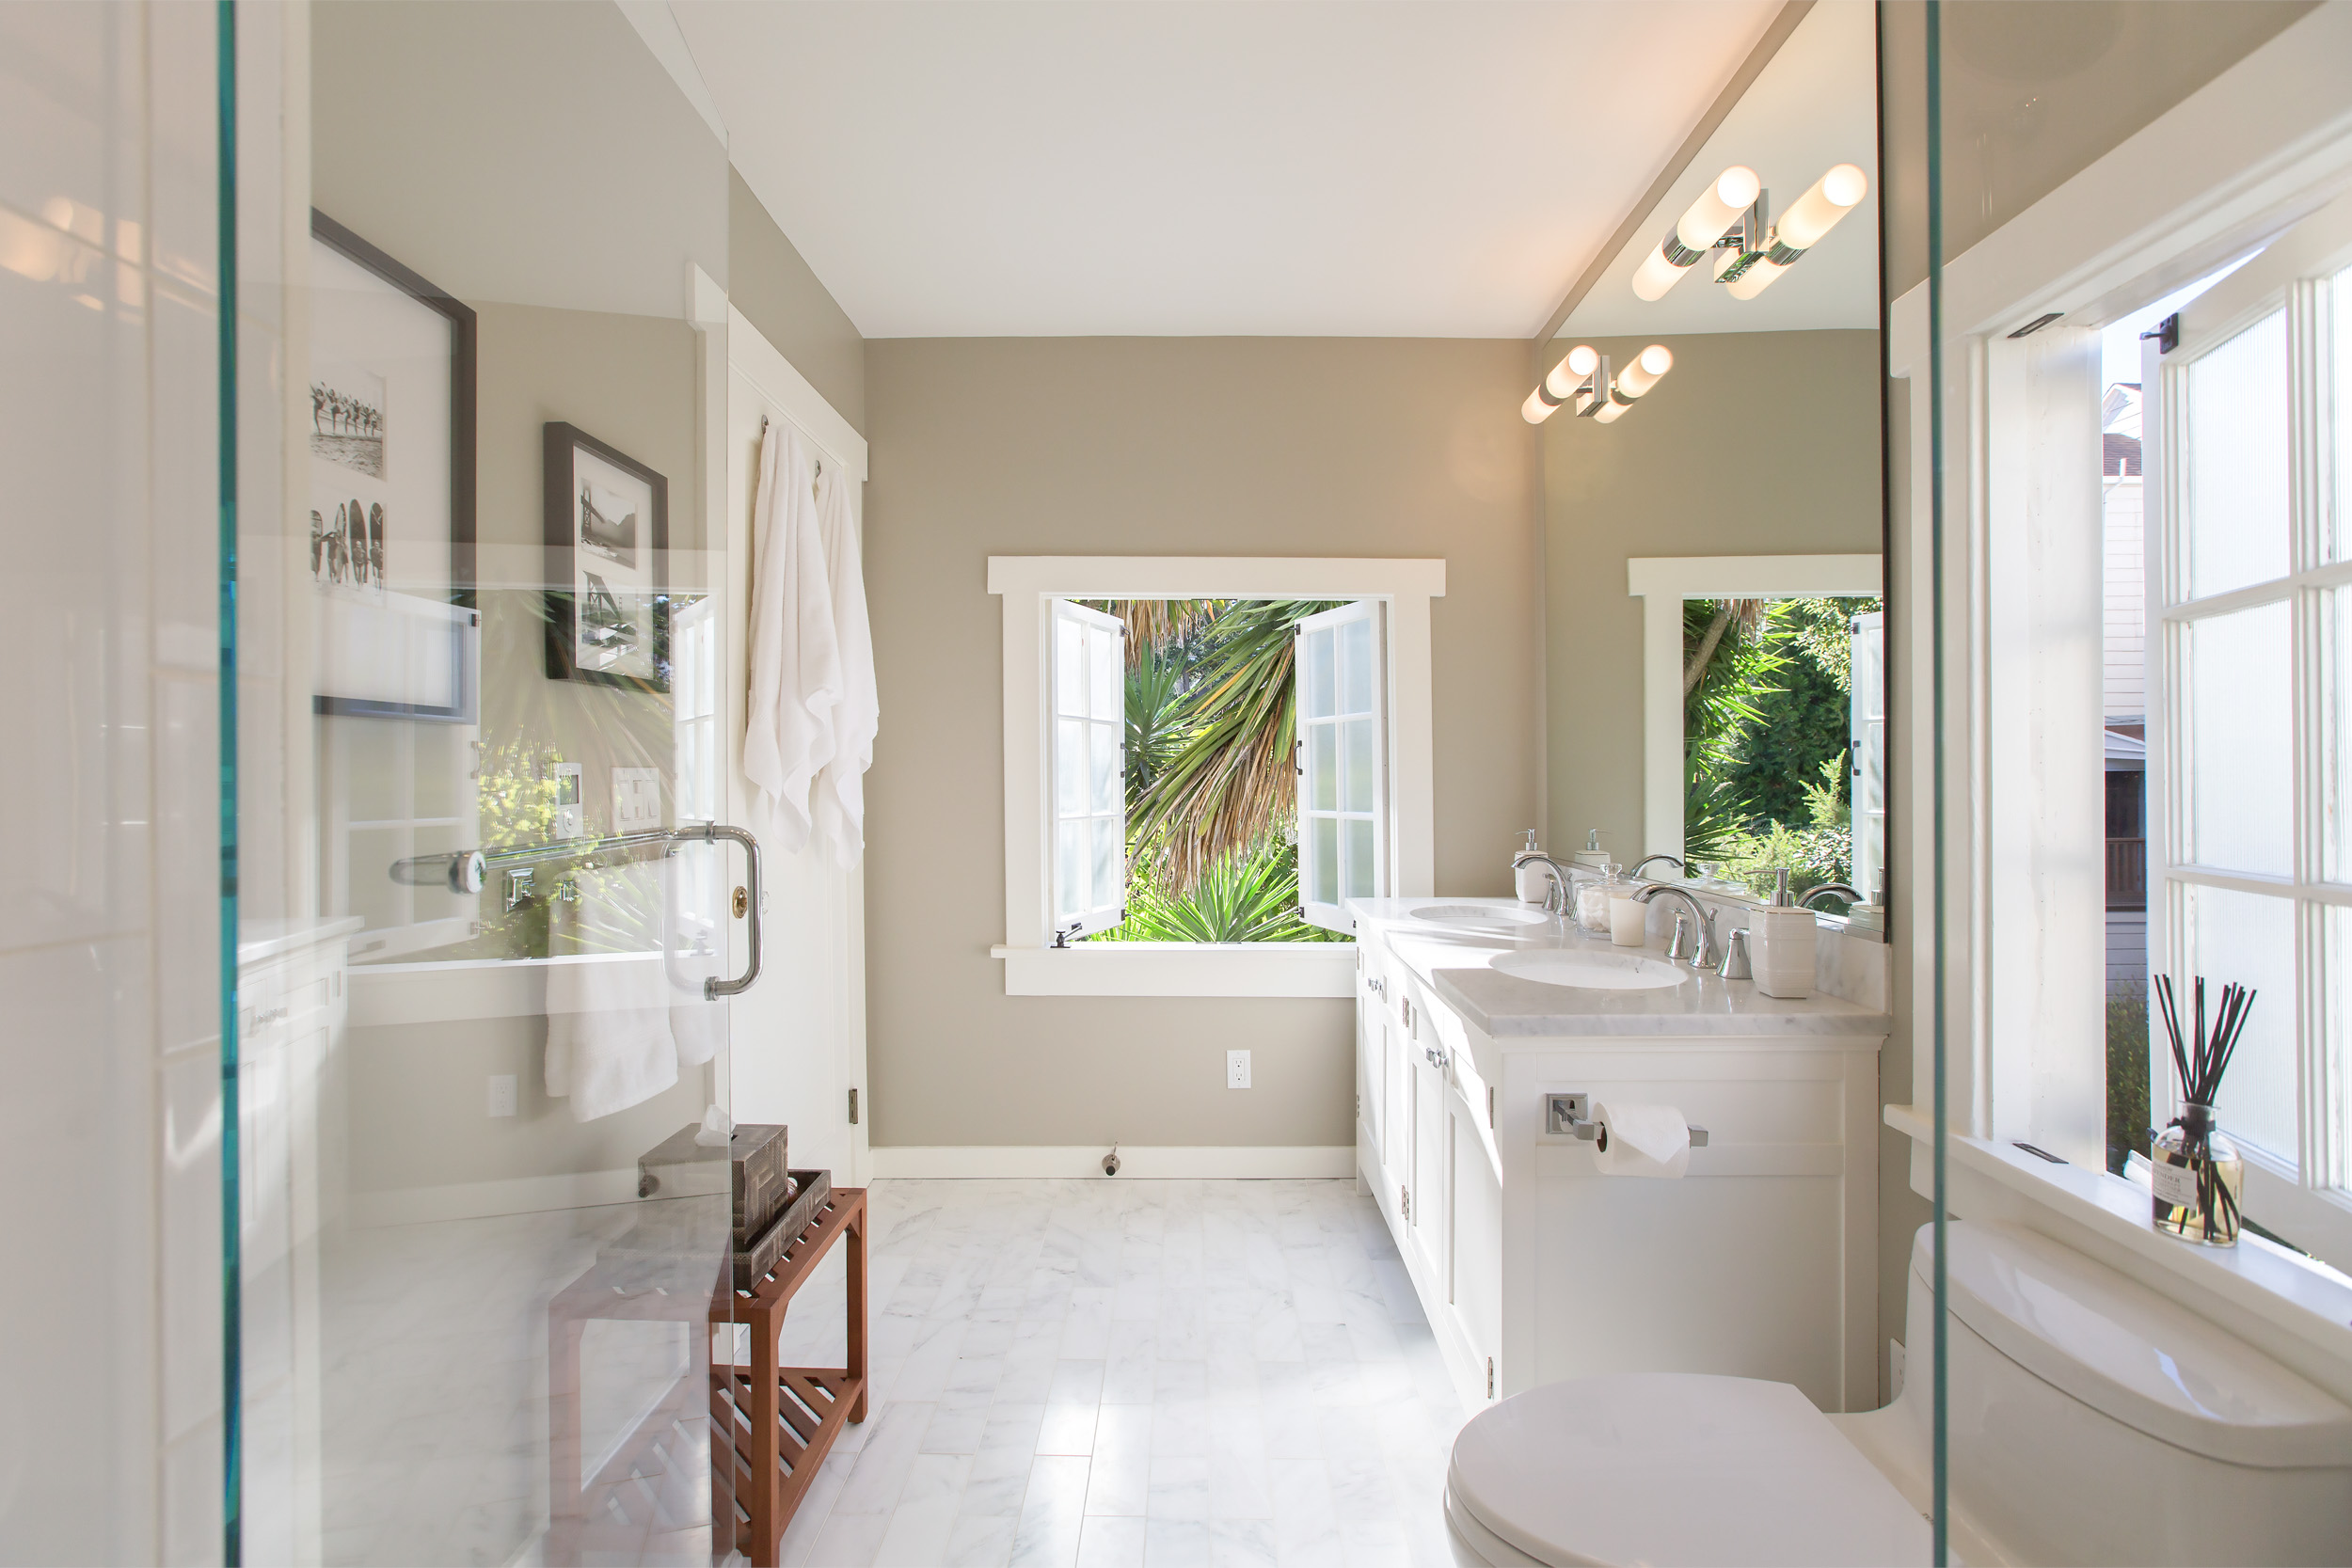 william-adams-design-cole-valley-white-bathroom-double-marble-vanity-view-from-shower.jpg